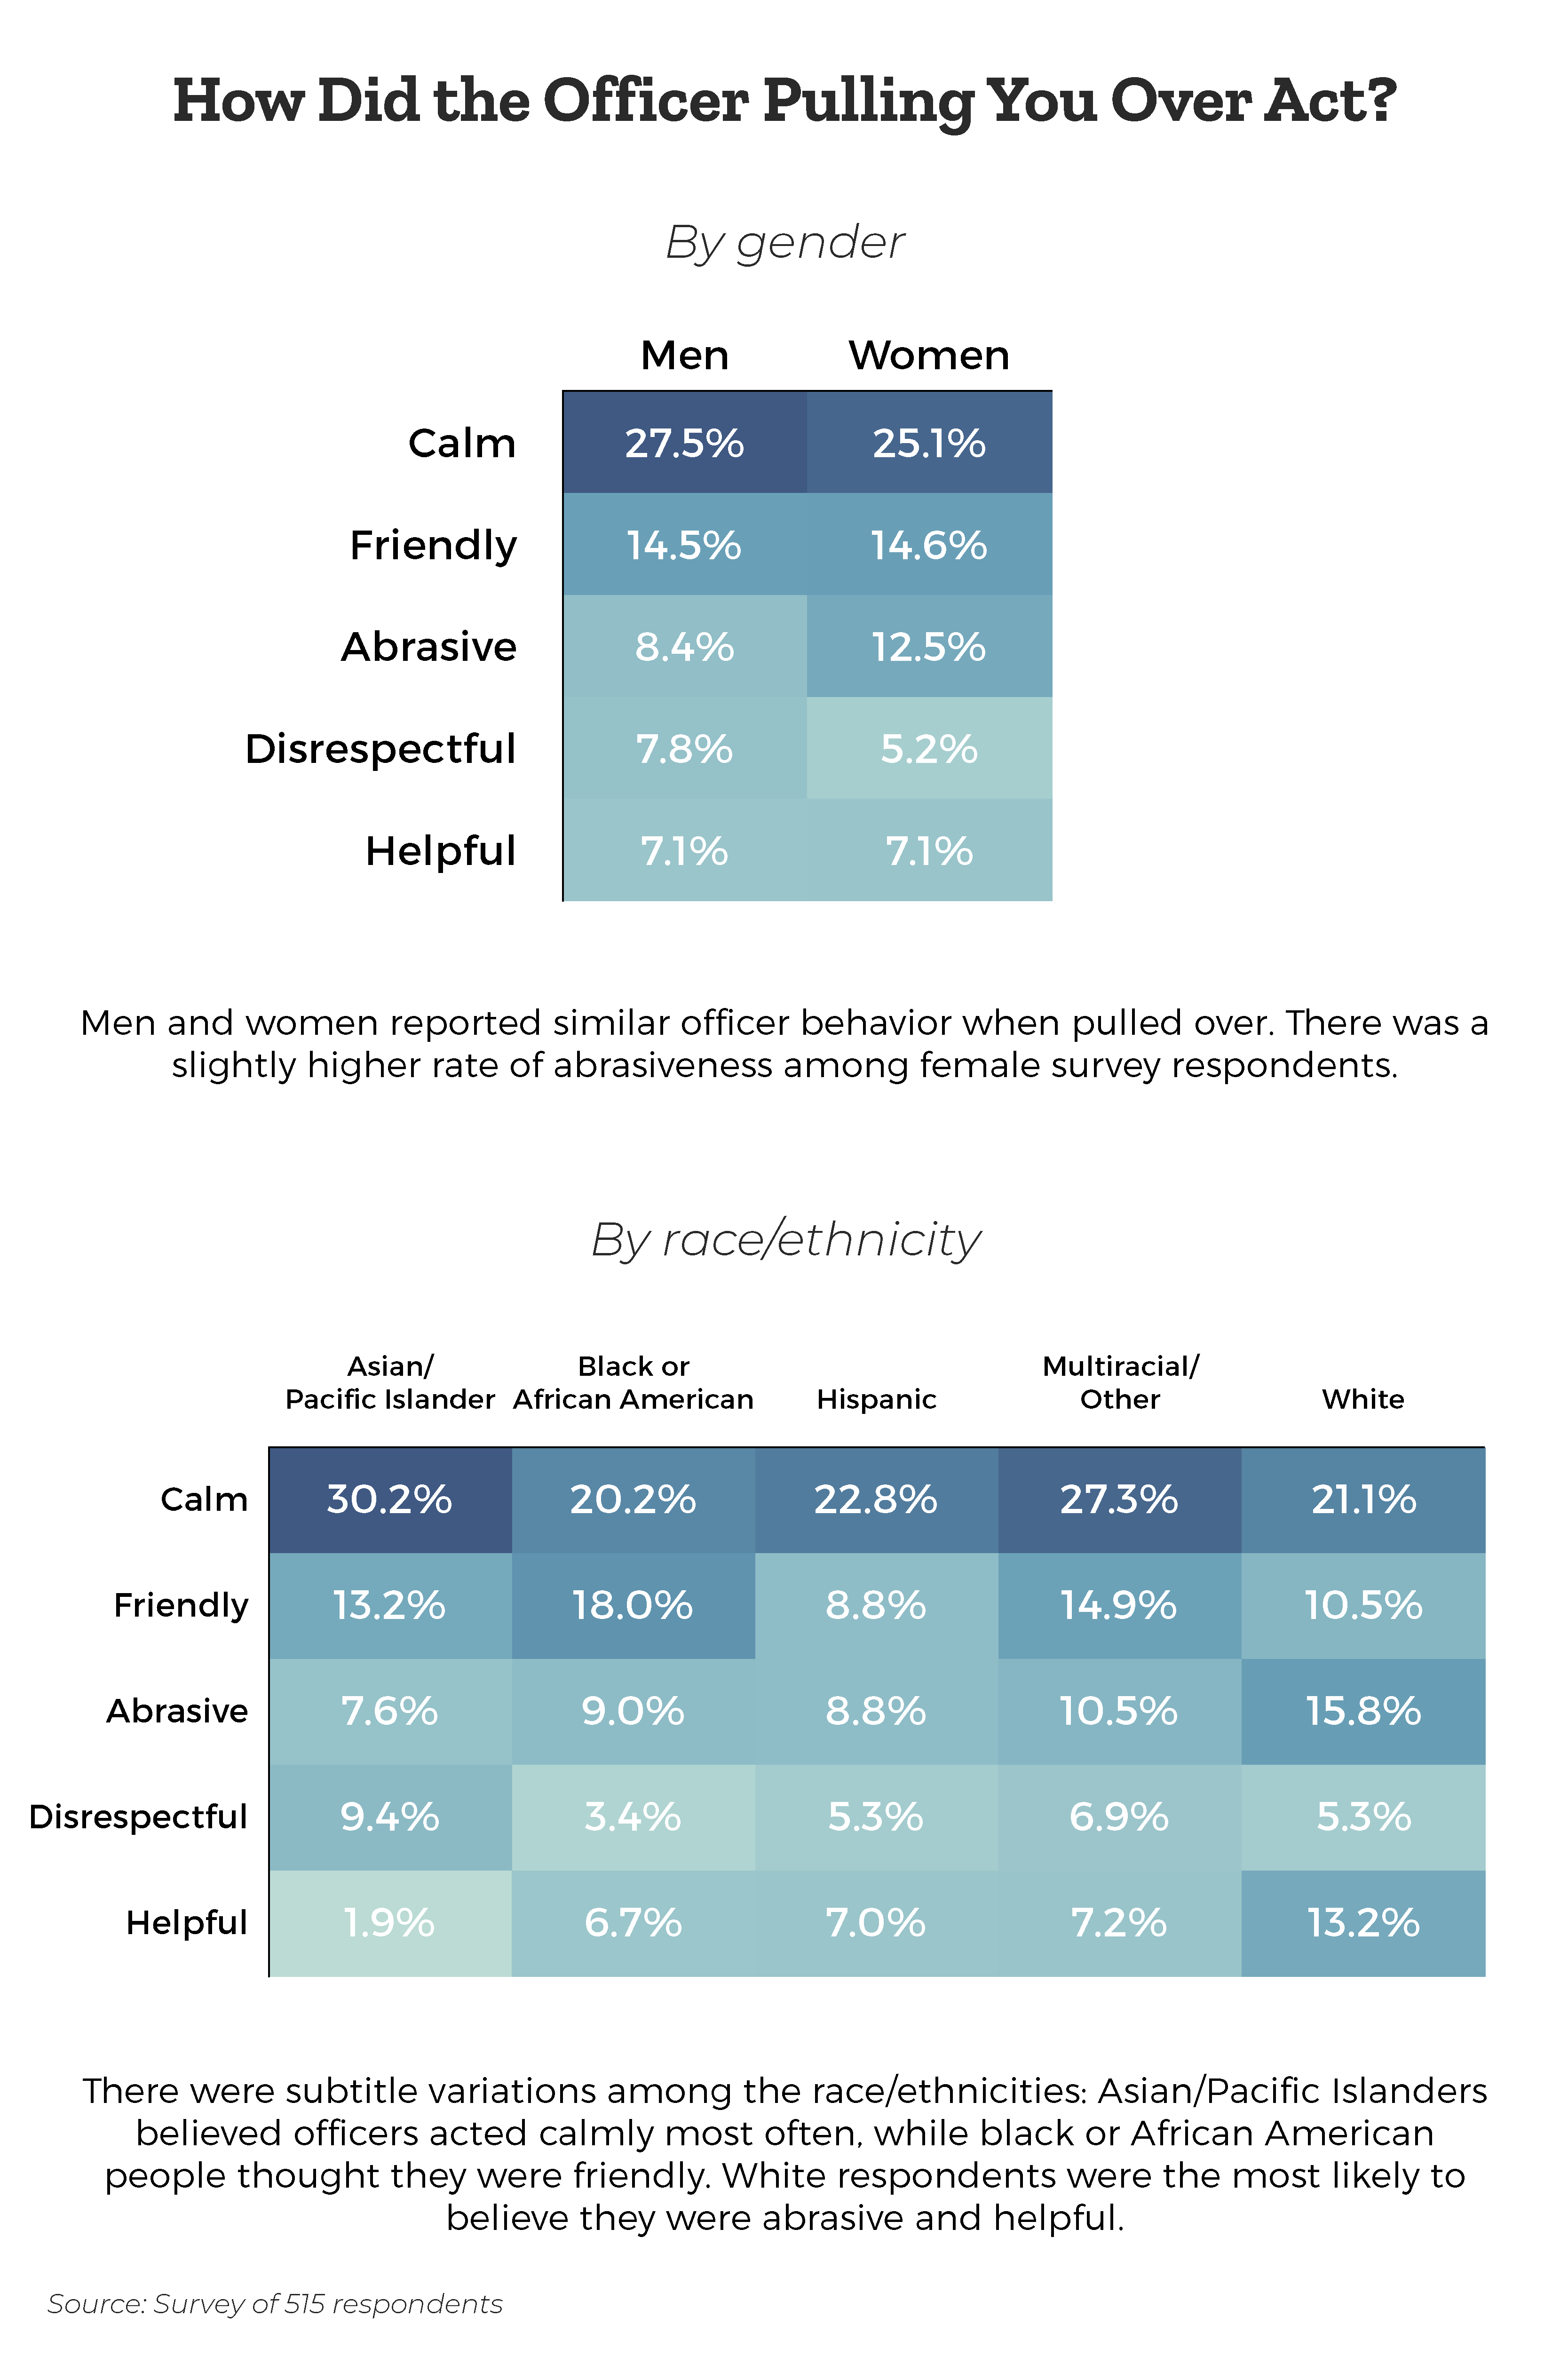 when-pulling-over-how-did-the-police-officer-act-by-gender-by-ethnicity